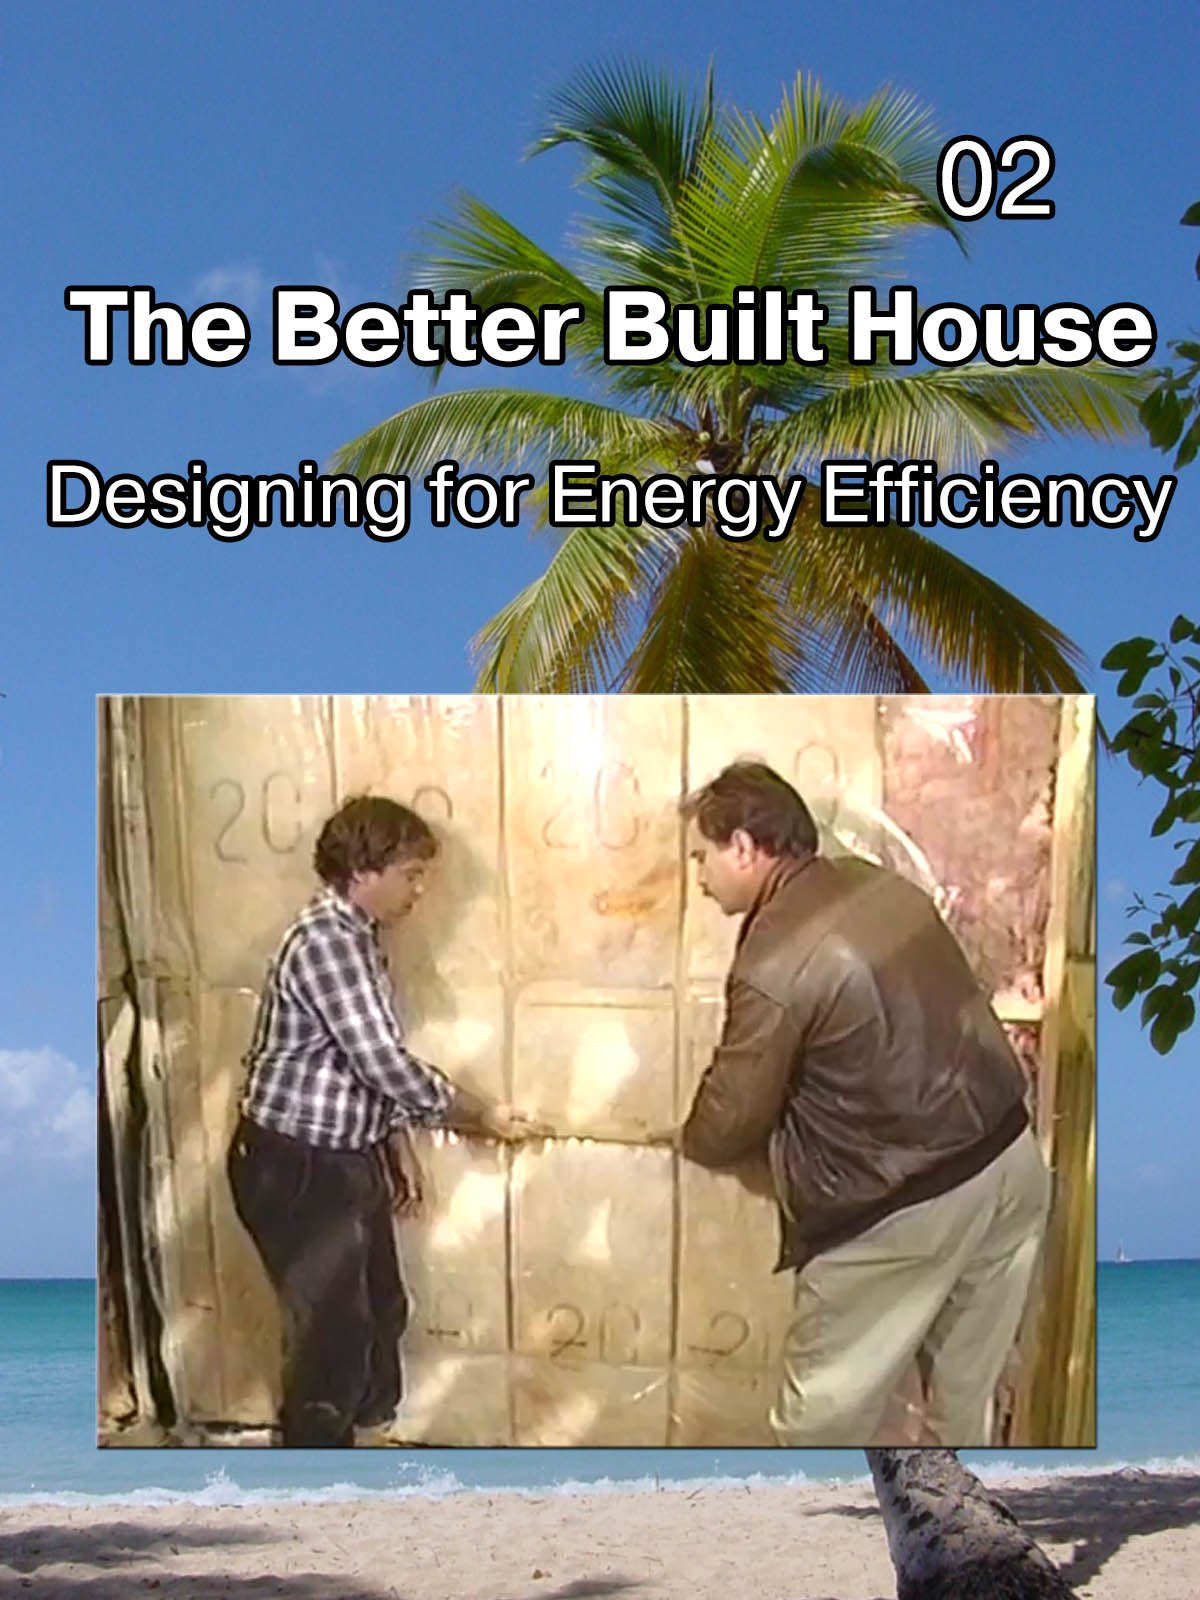 The Better Built House 02 Designing for Energy Efficiency